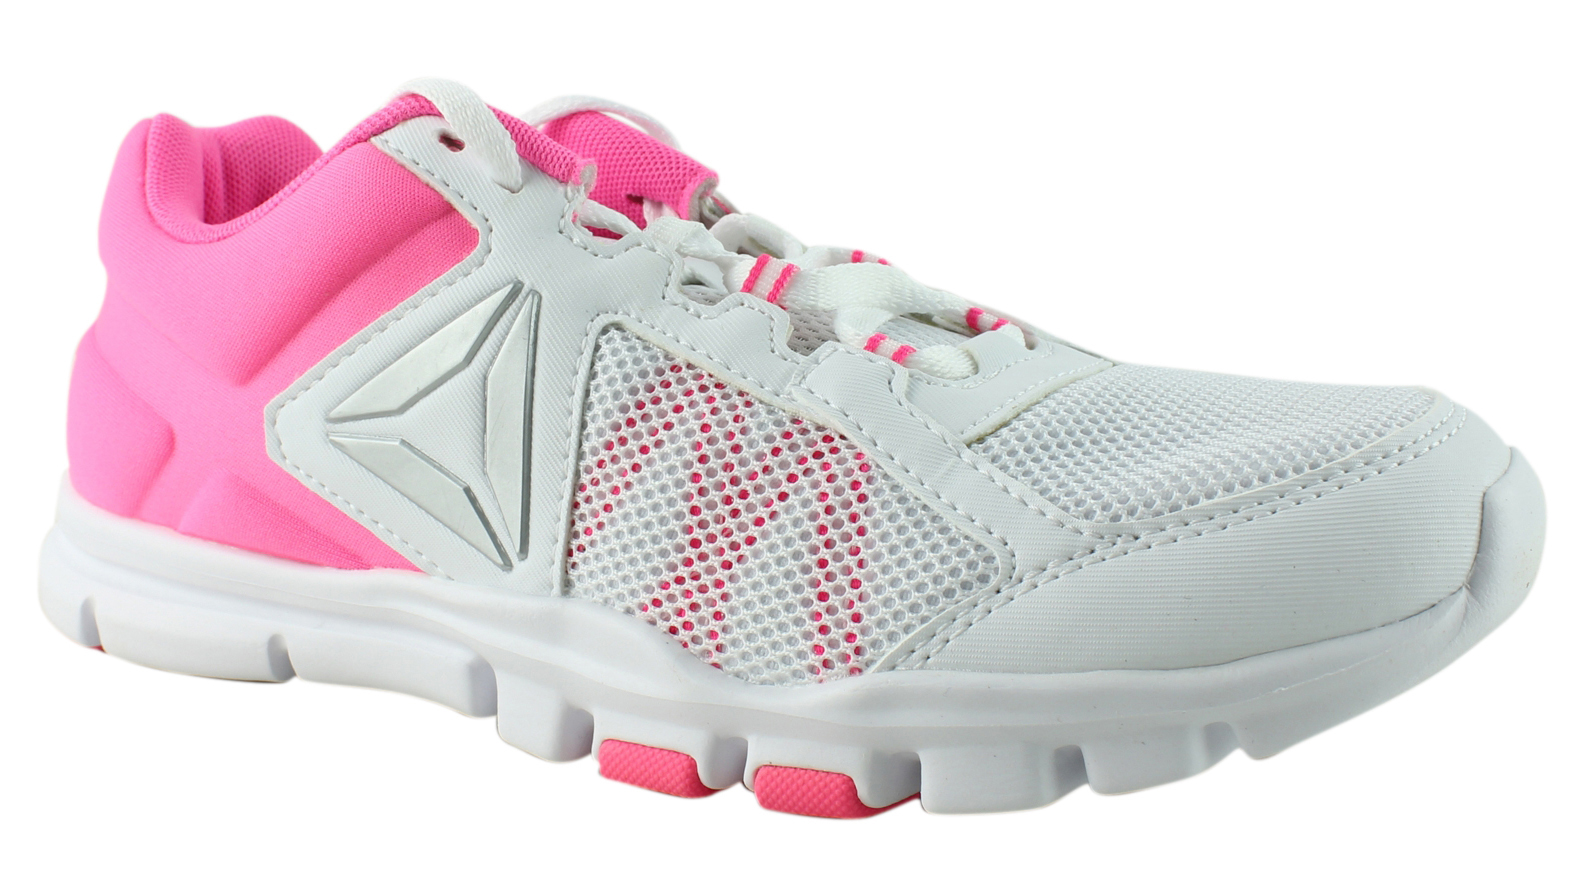 5a29f4530b1 New Reebok Womens Yourflex Trainette 9.0 Mt Pink Cross Training Shoes Size  7.5